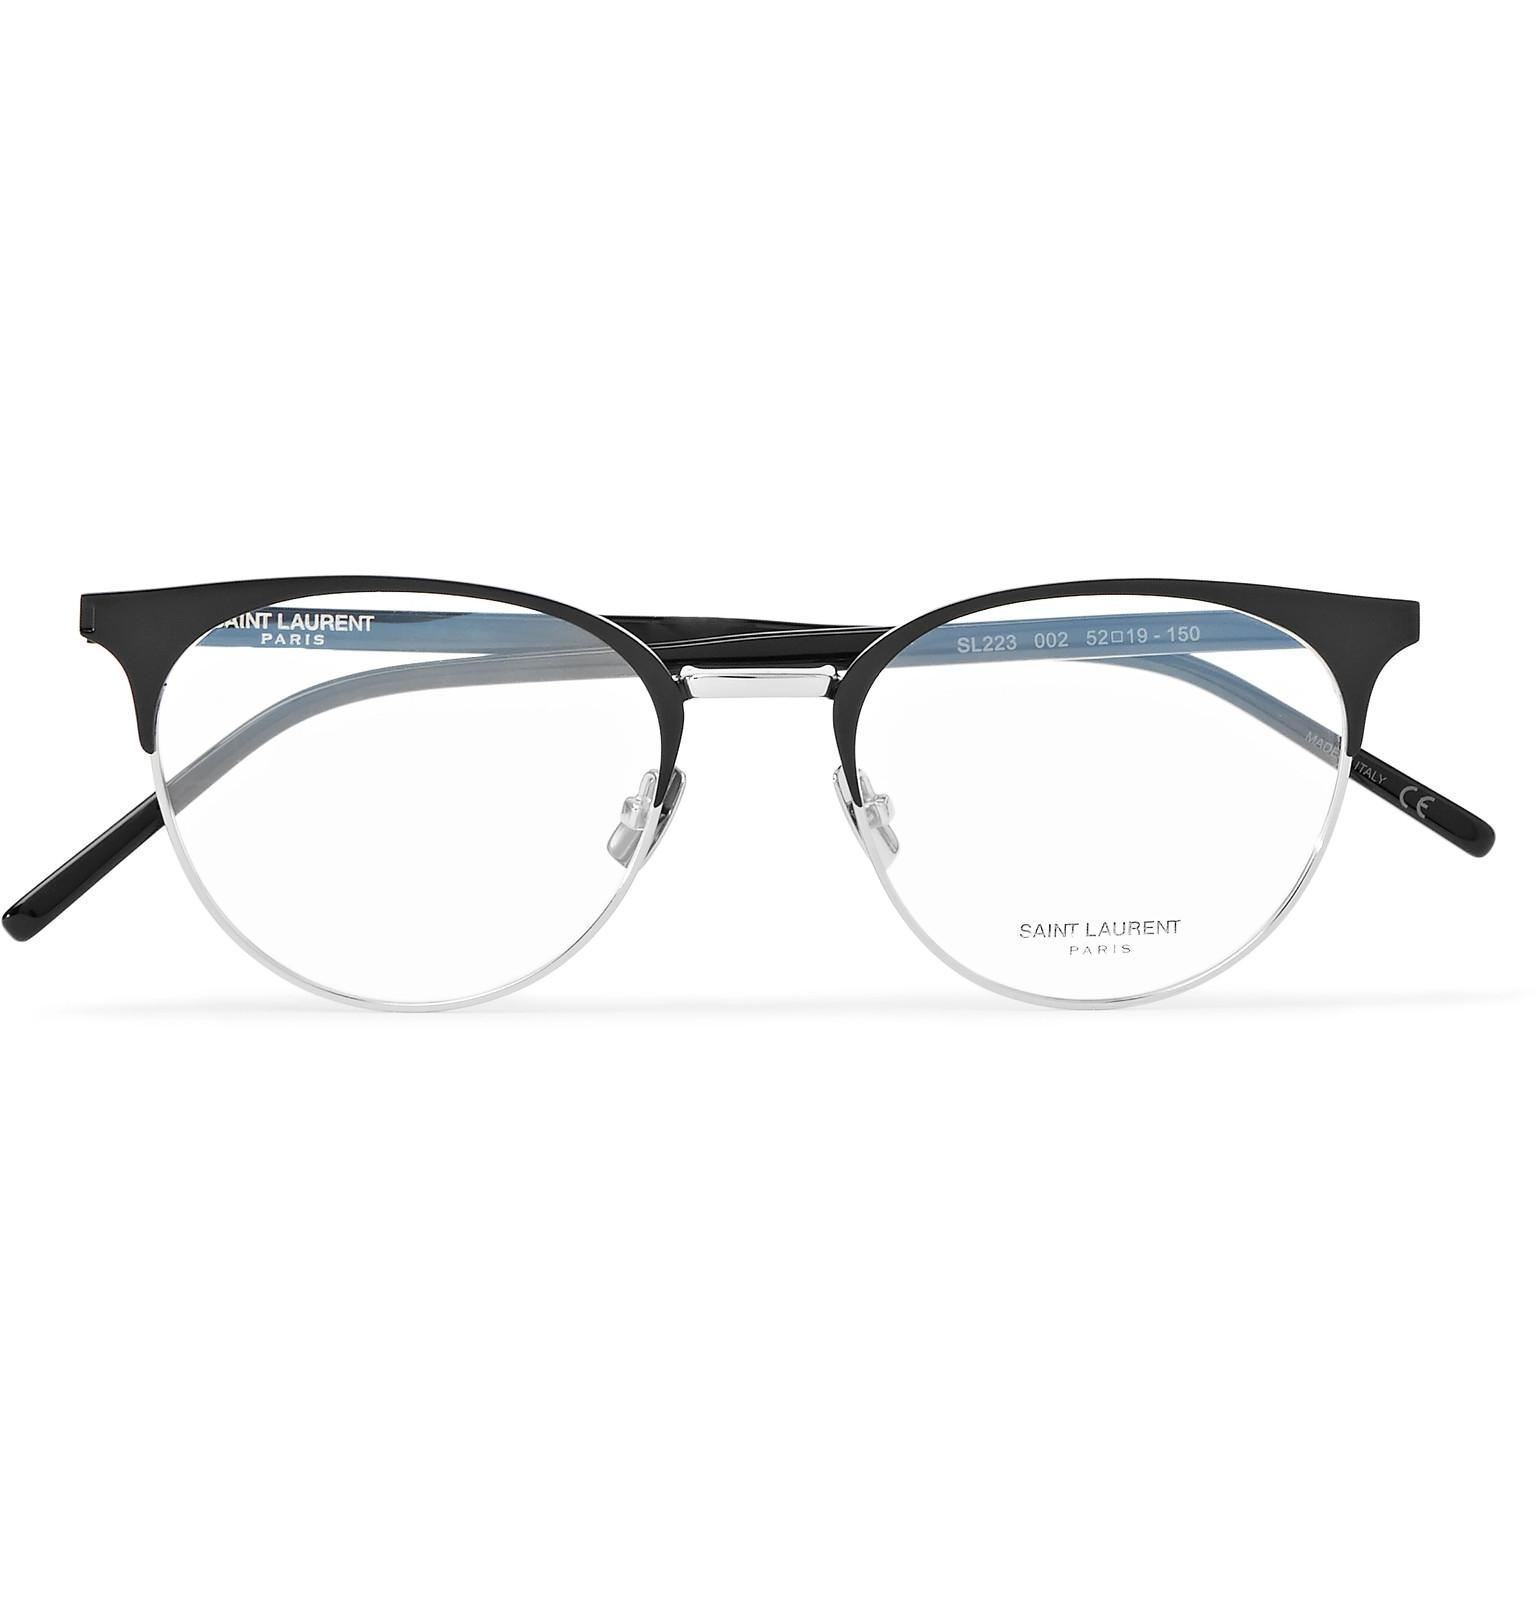 92102aee68e2 Saint Laurent Round-frame Acetate And Silver-tone Optical Glasses in ...